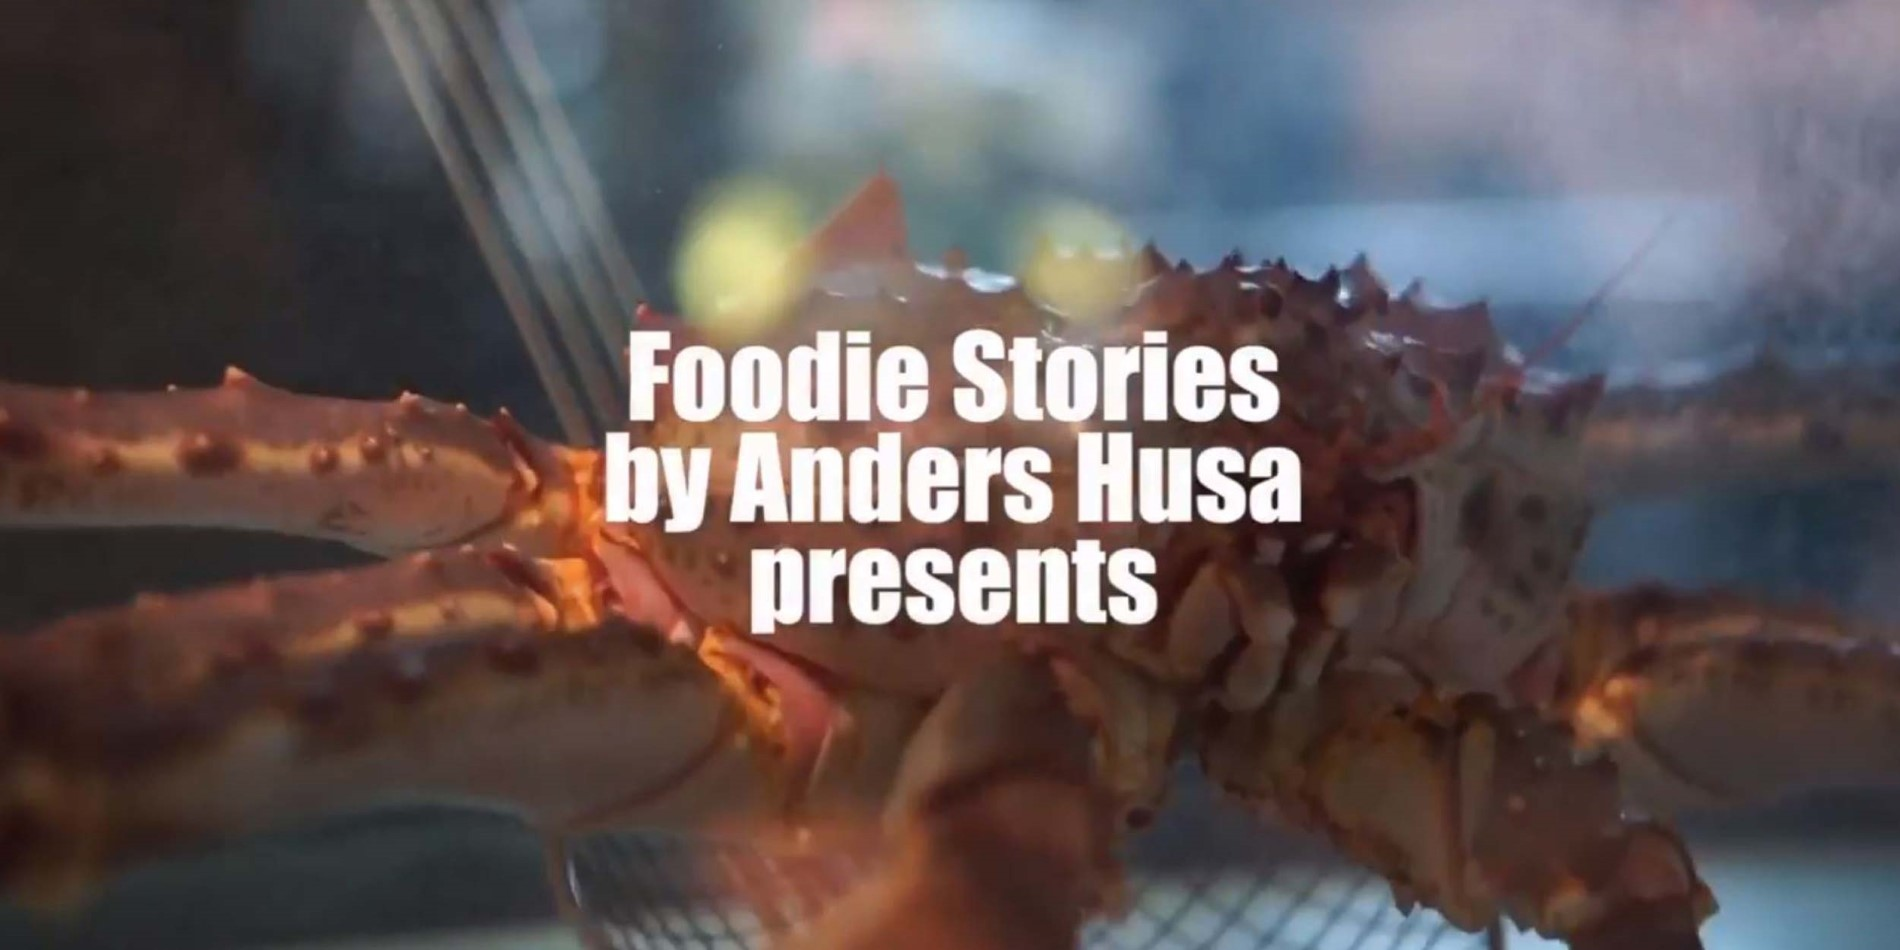 anders-husa-foodie-stories.jpg